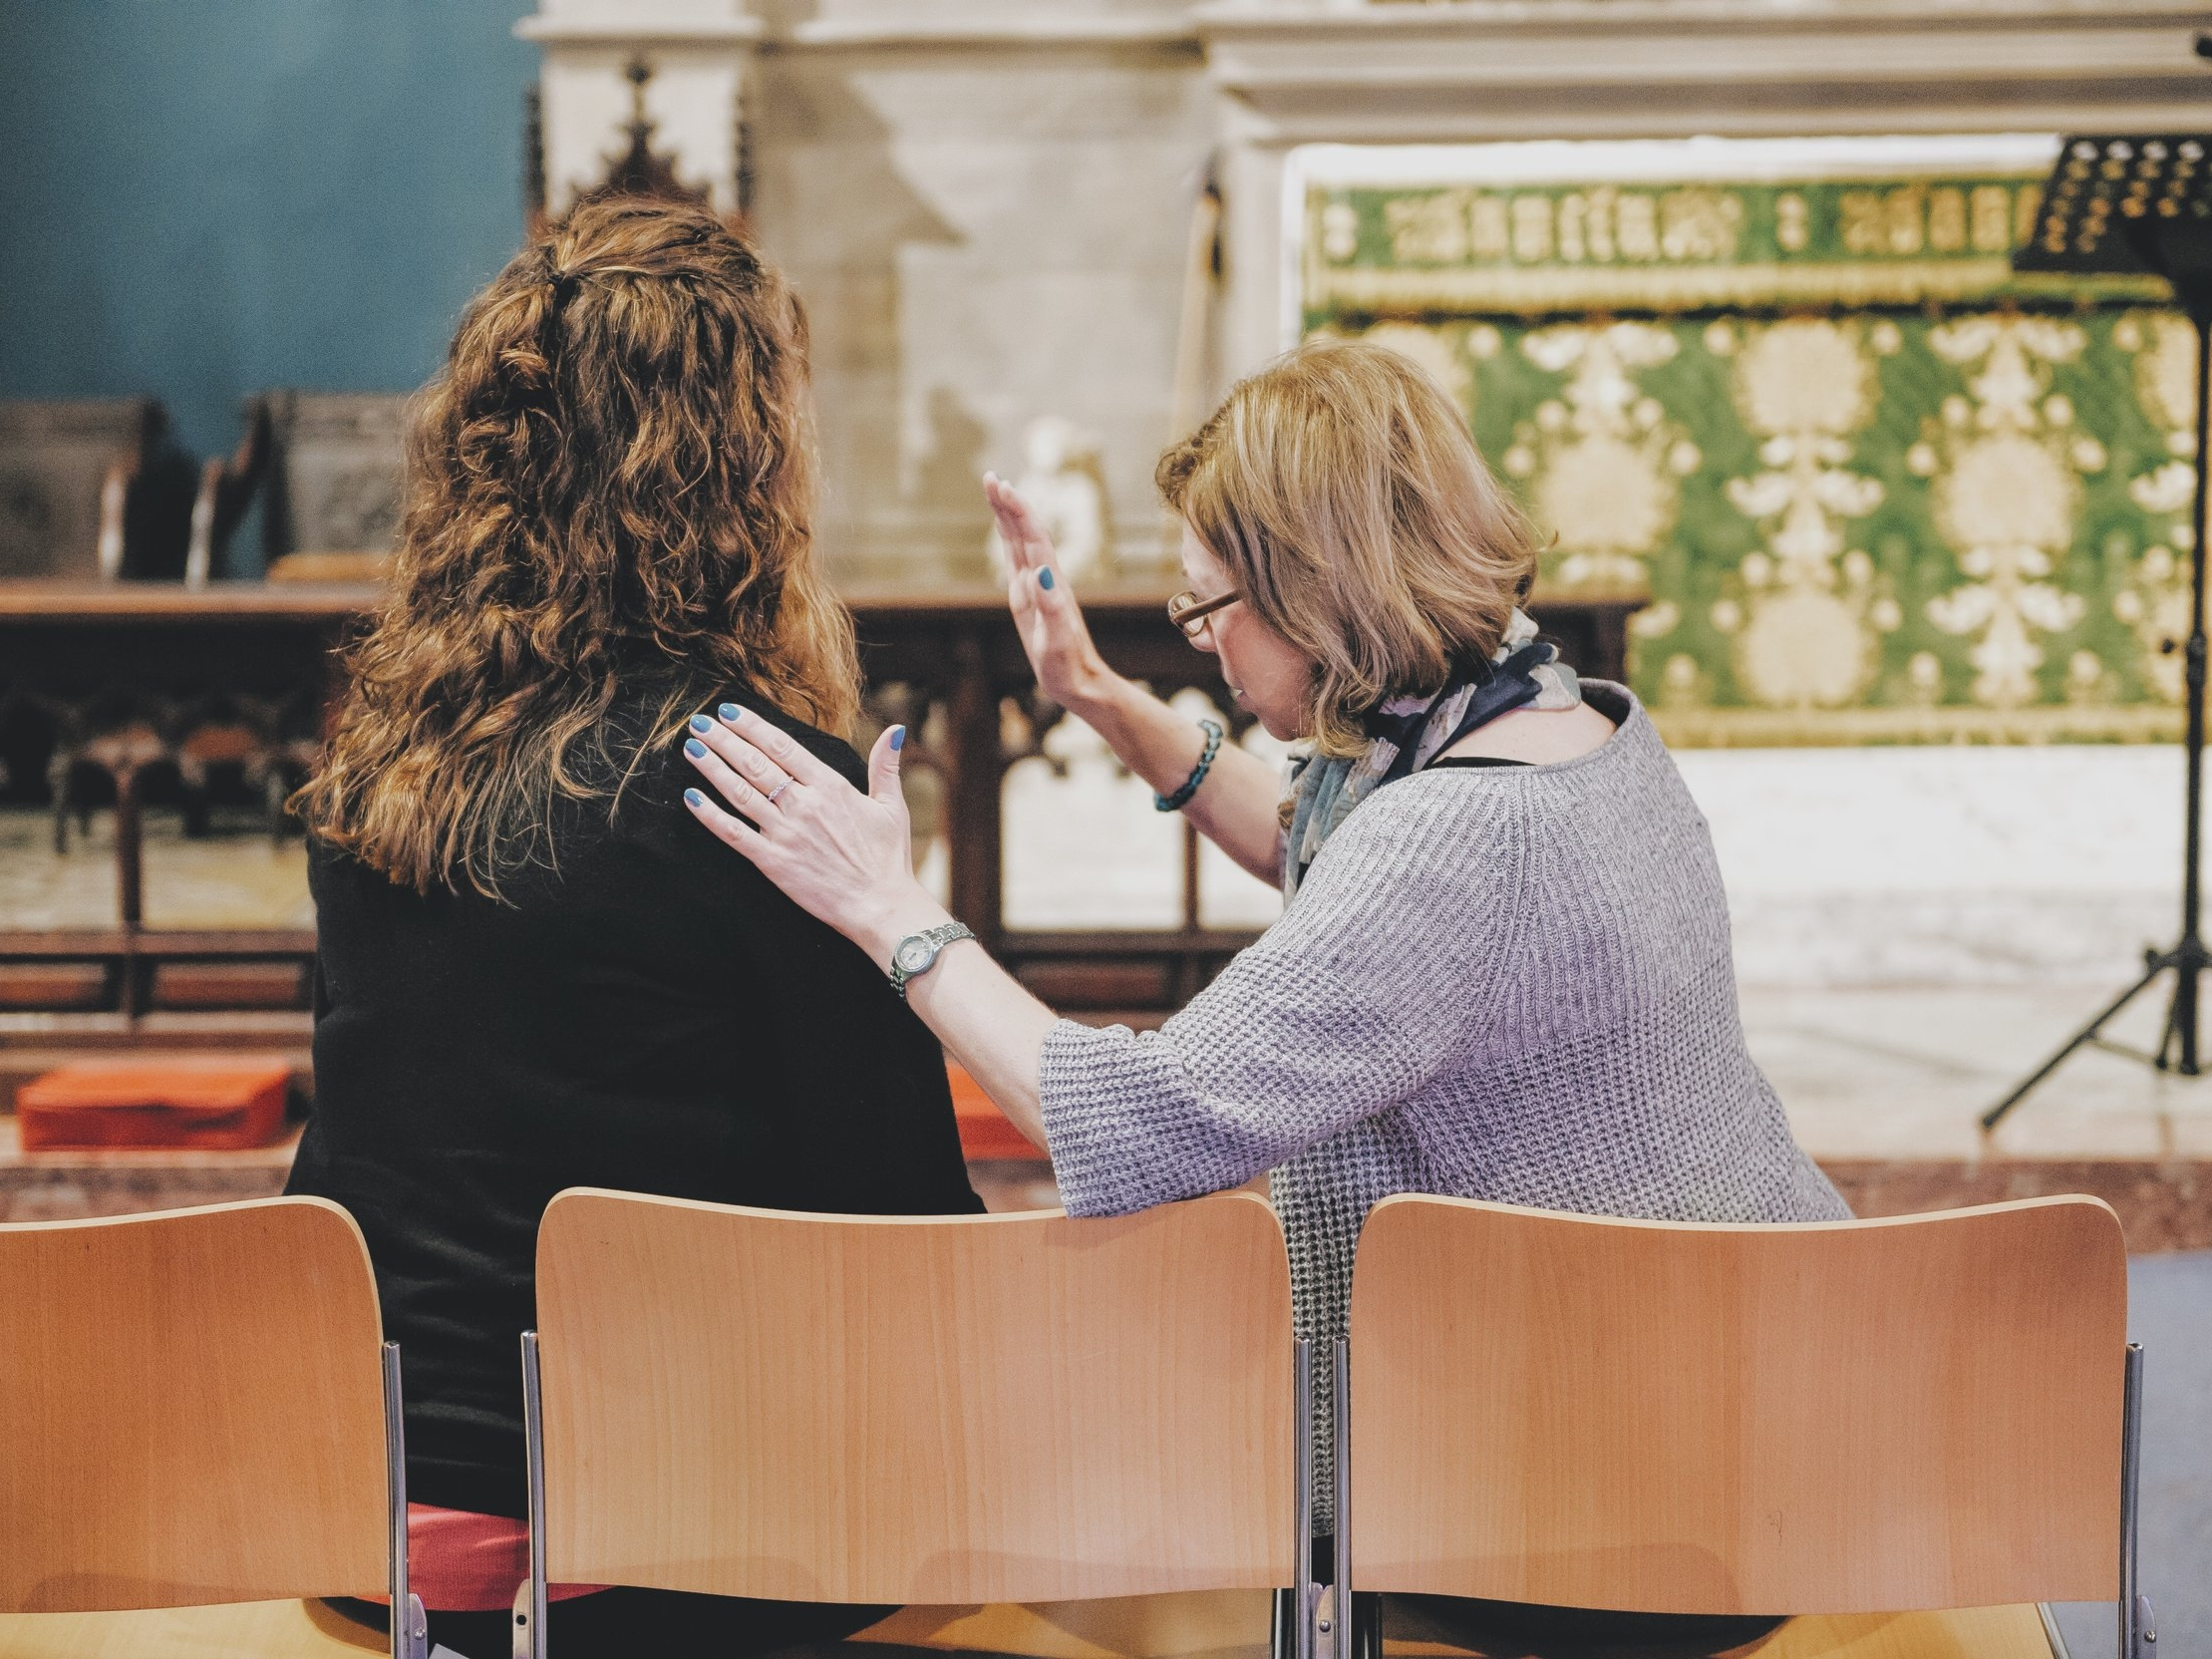 Prayer ministry - Praying with people during or after services, following the leading of the Holy Spirit.To get involved email Pippa